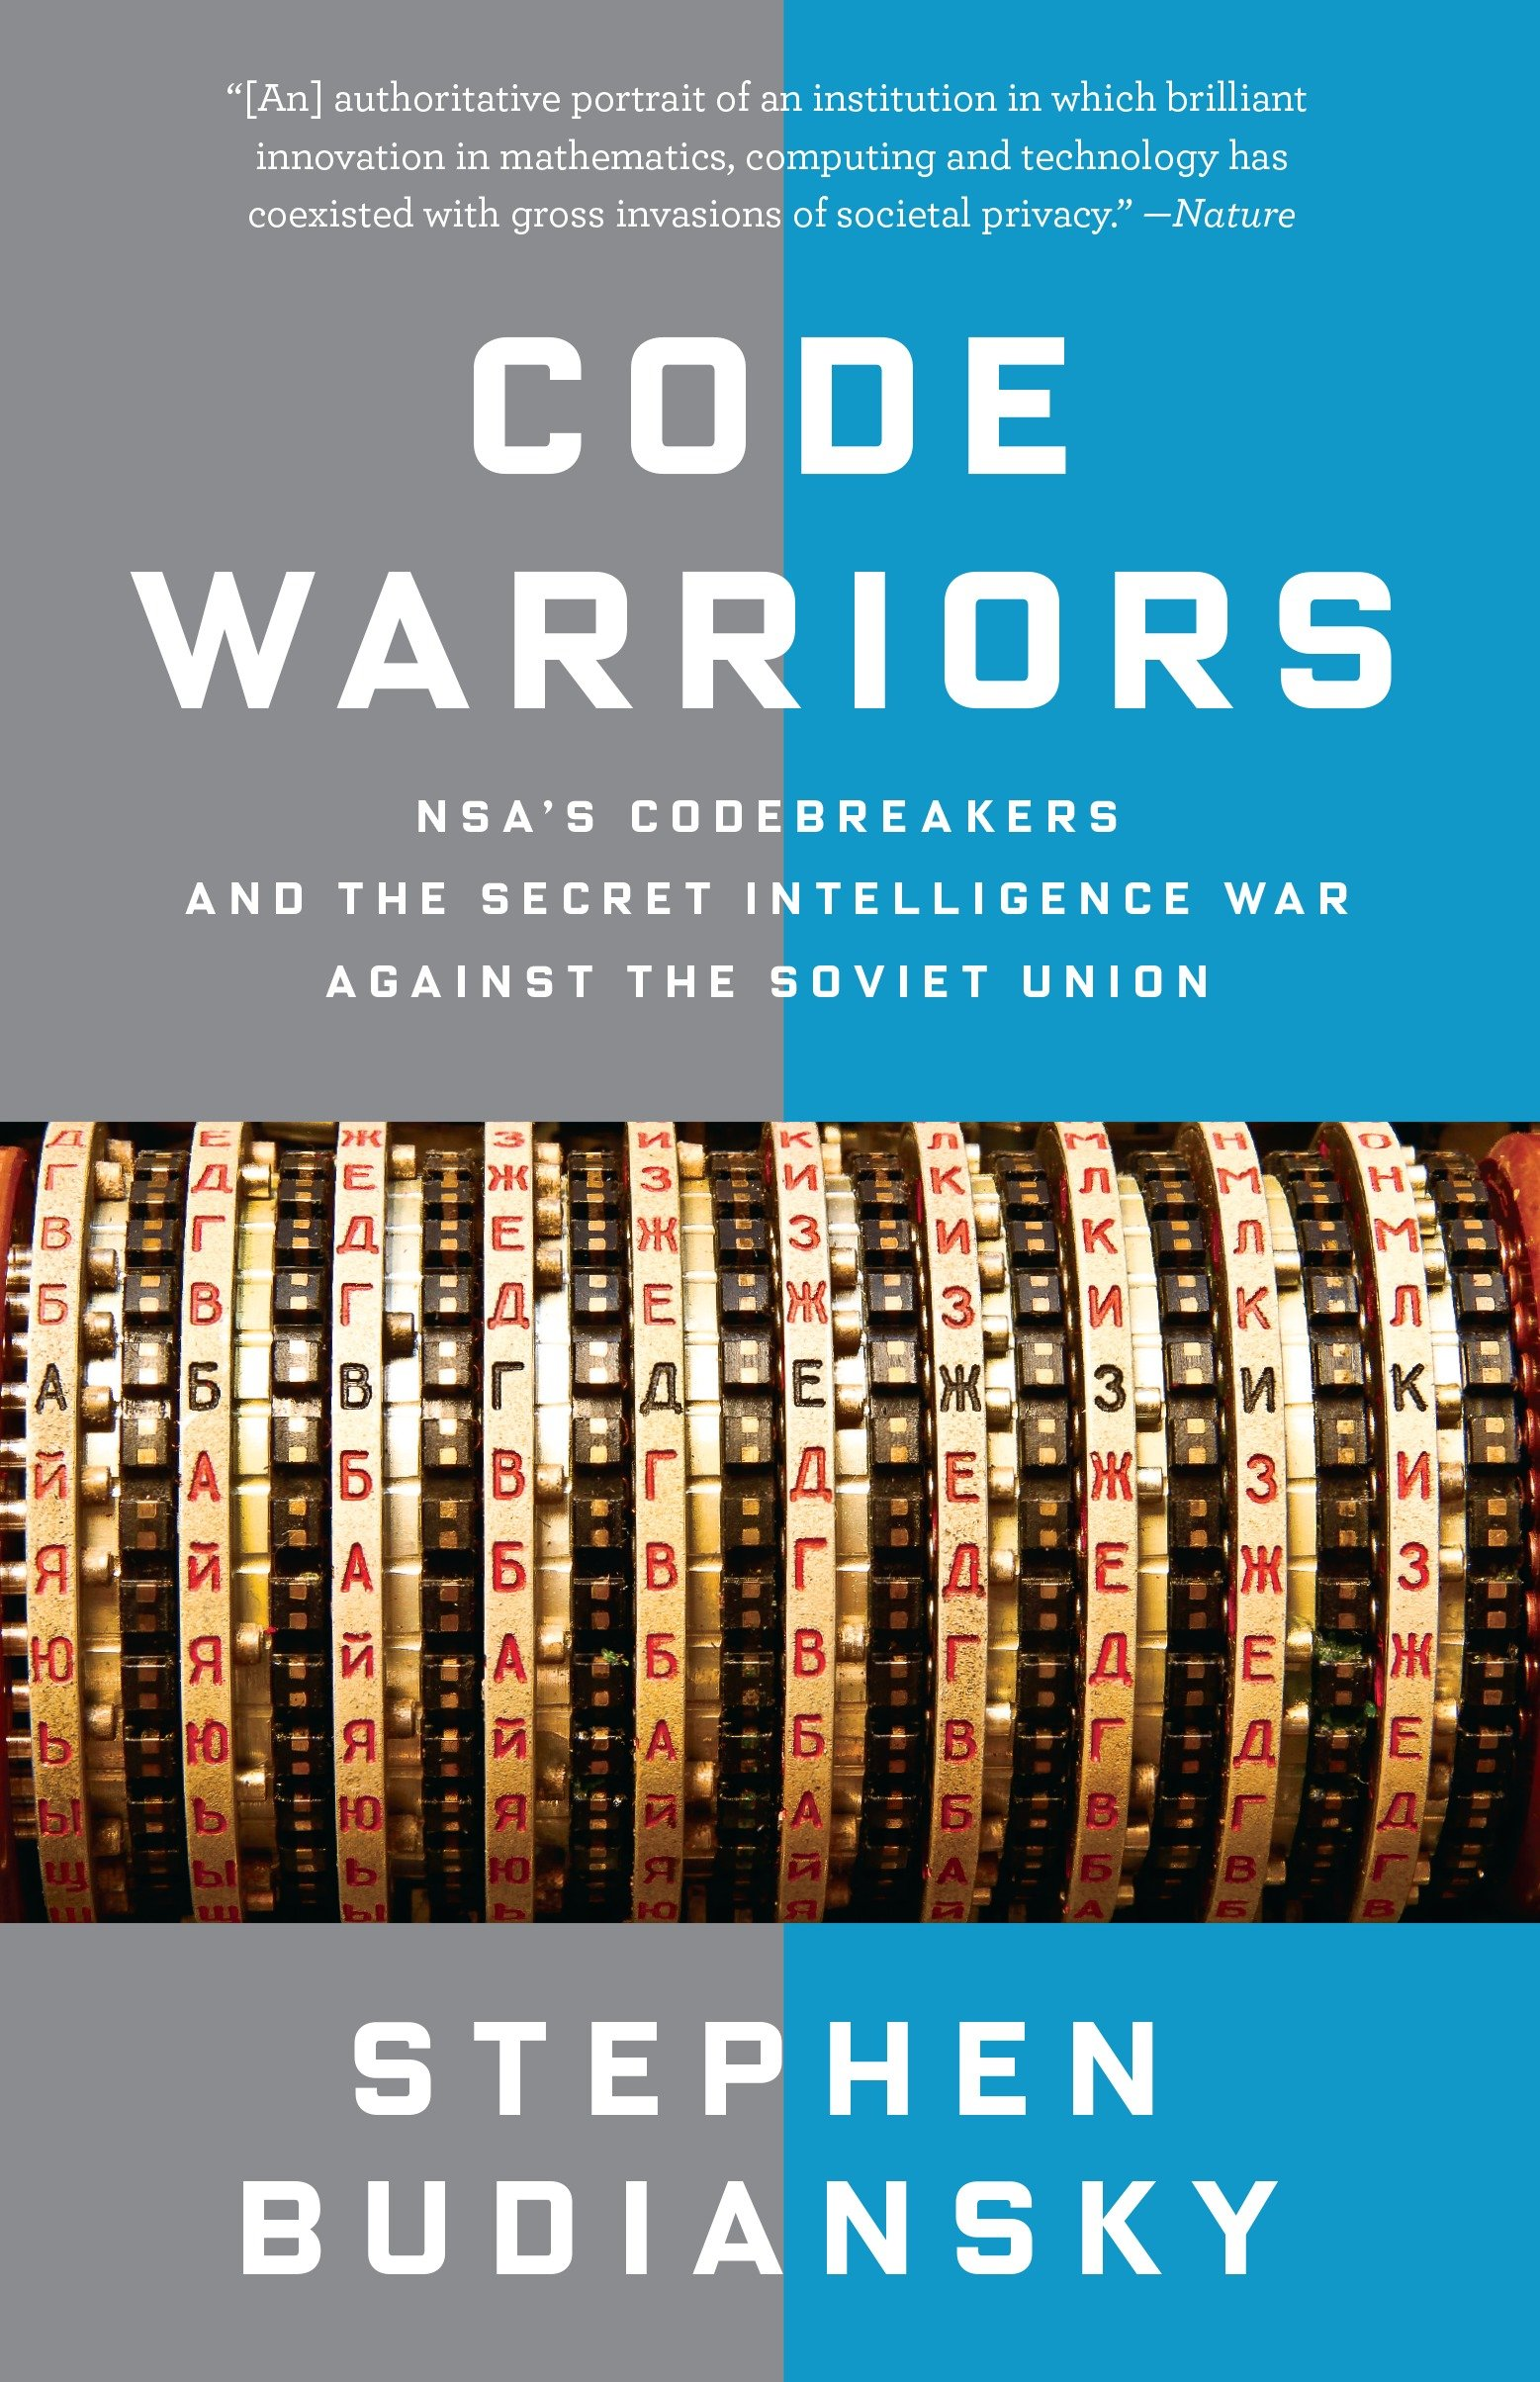 Image OfCode Warriors: NSA's Codebreakers And The Secret Intelligence War Against The Soviet Union (English Edition)